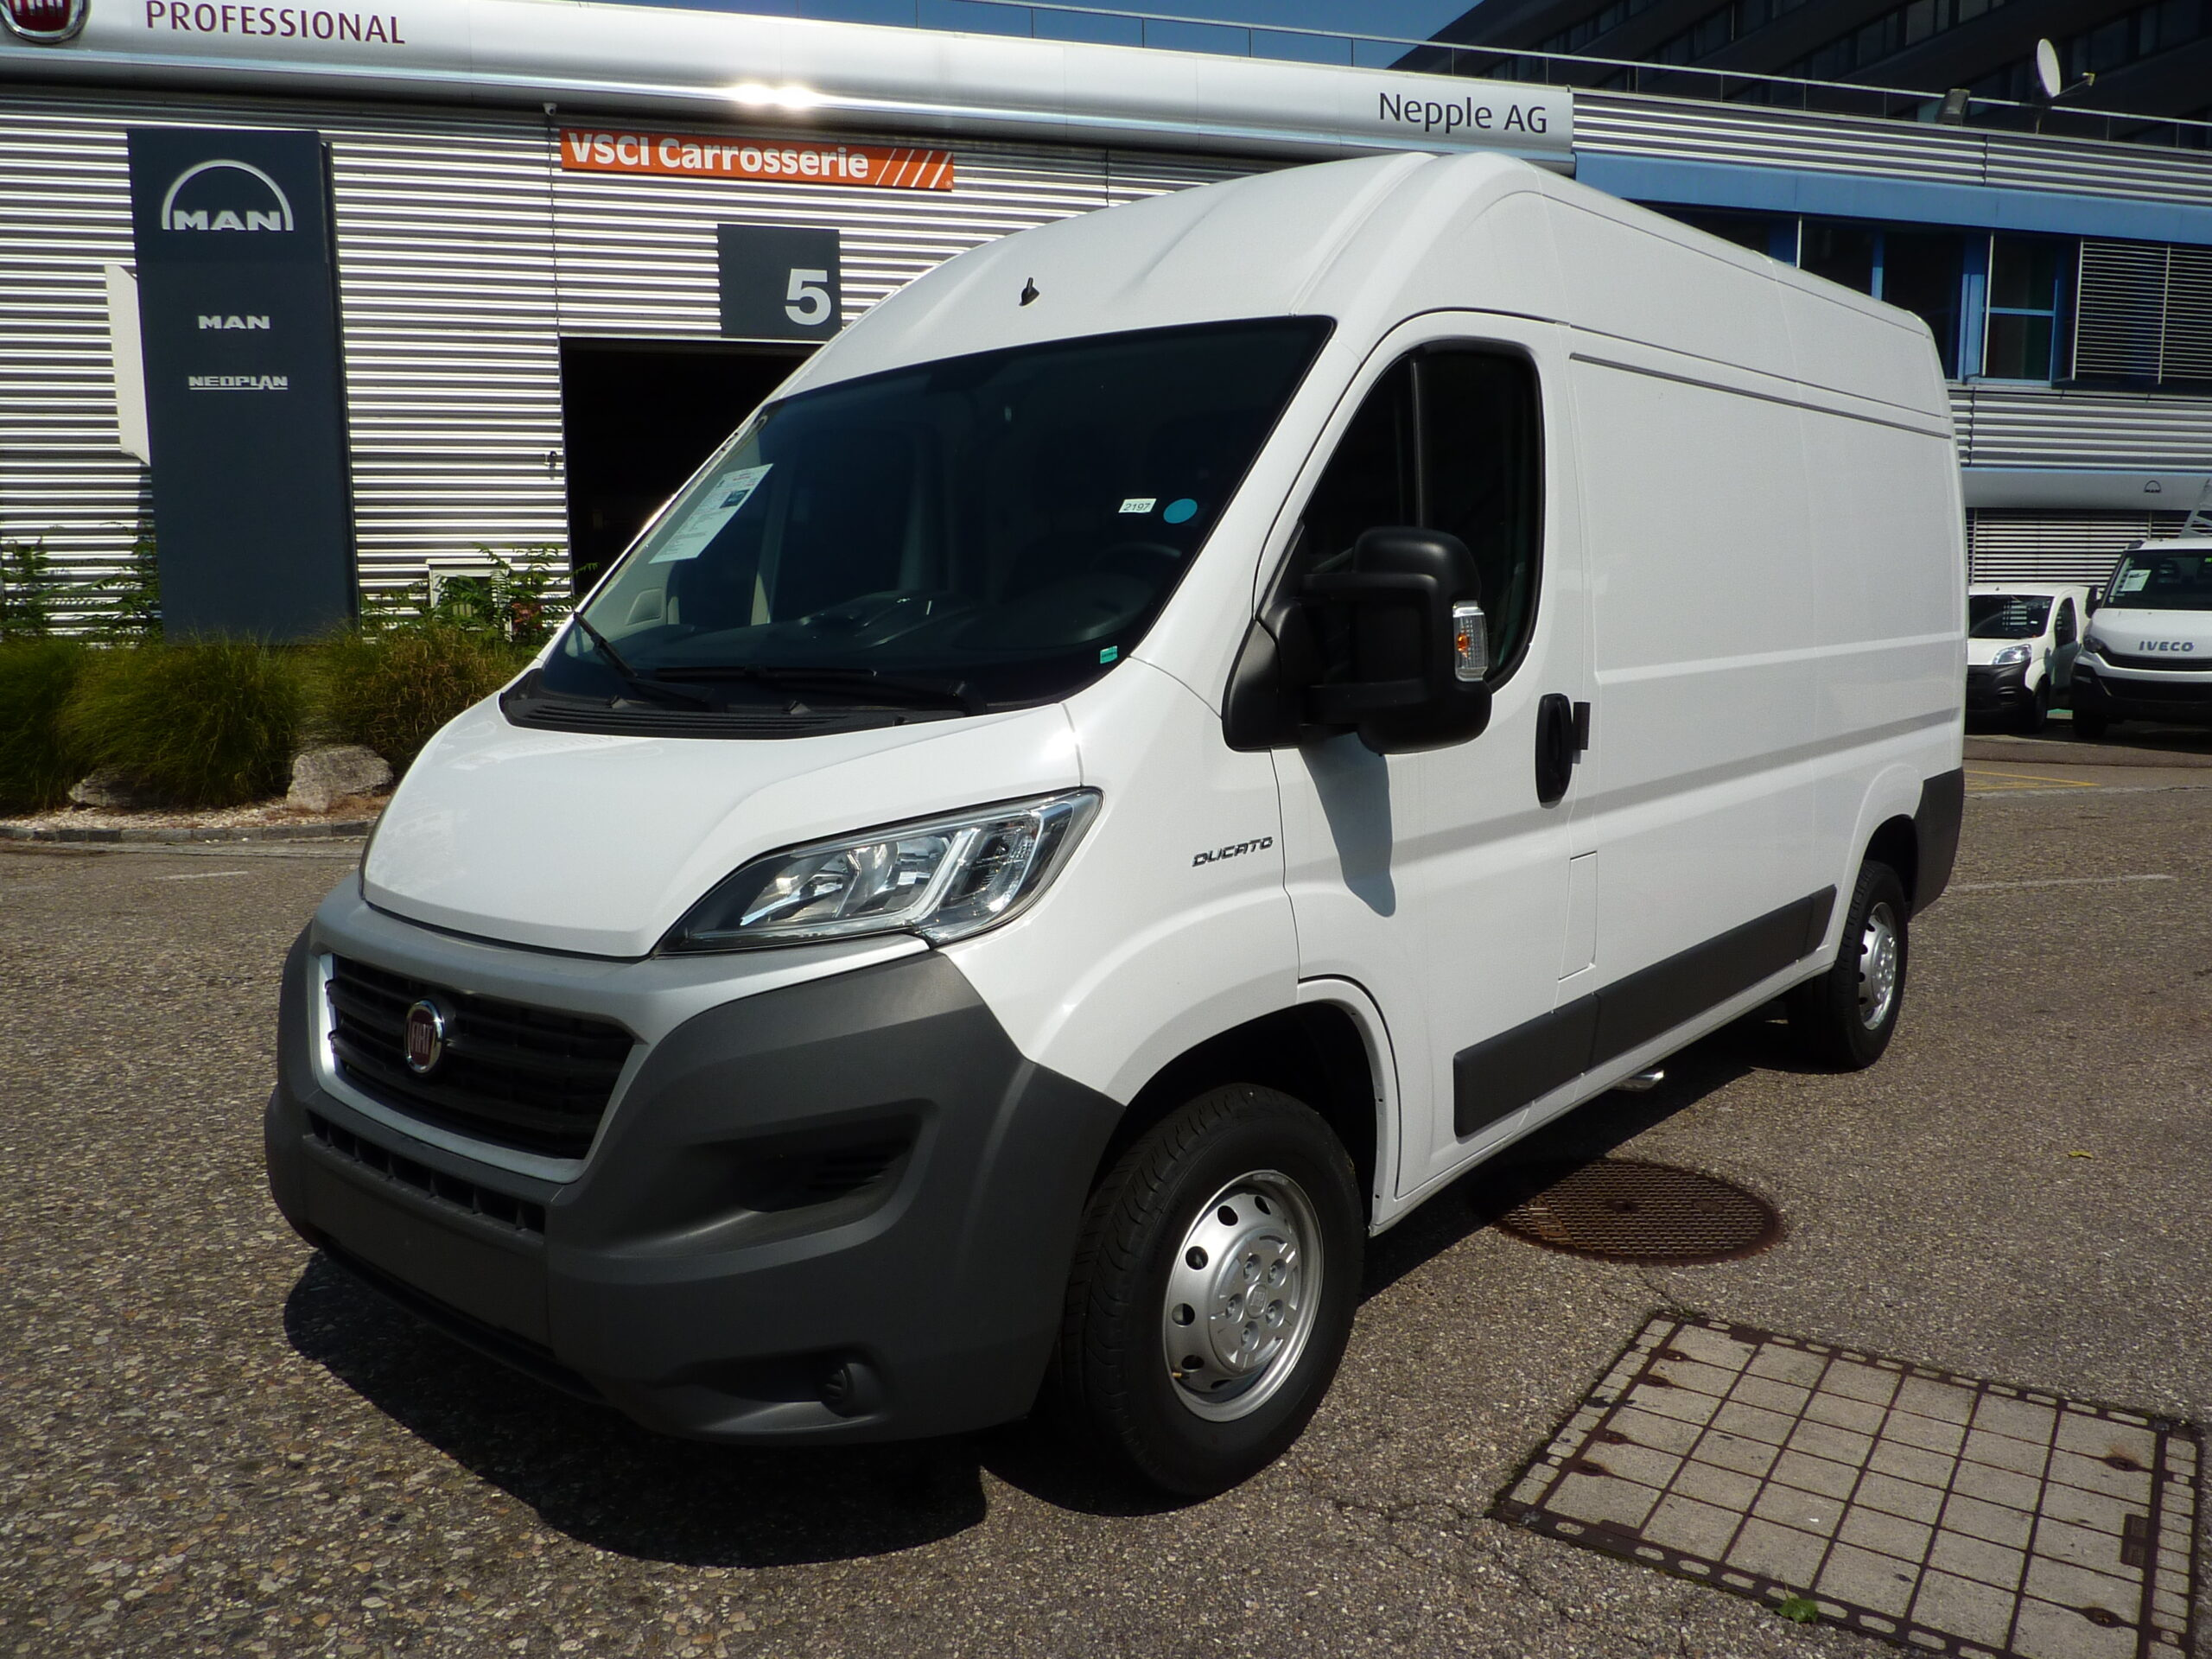 Fiat Ducato 35, 2.3MJ 160PS L2H2 / 3041, 3045, 3046, 3047, 3048, 3119, 3120